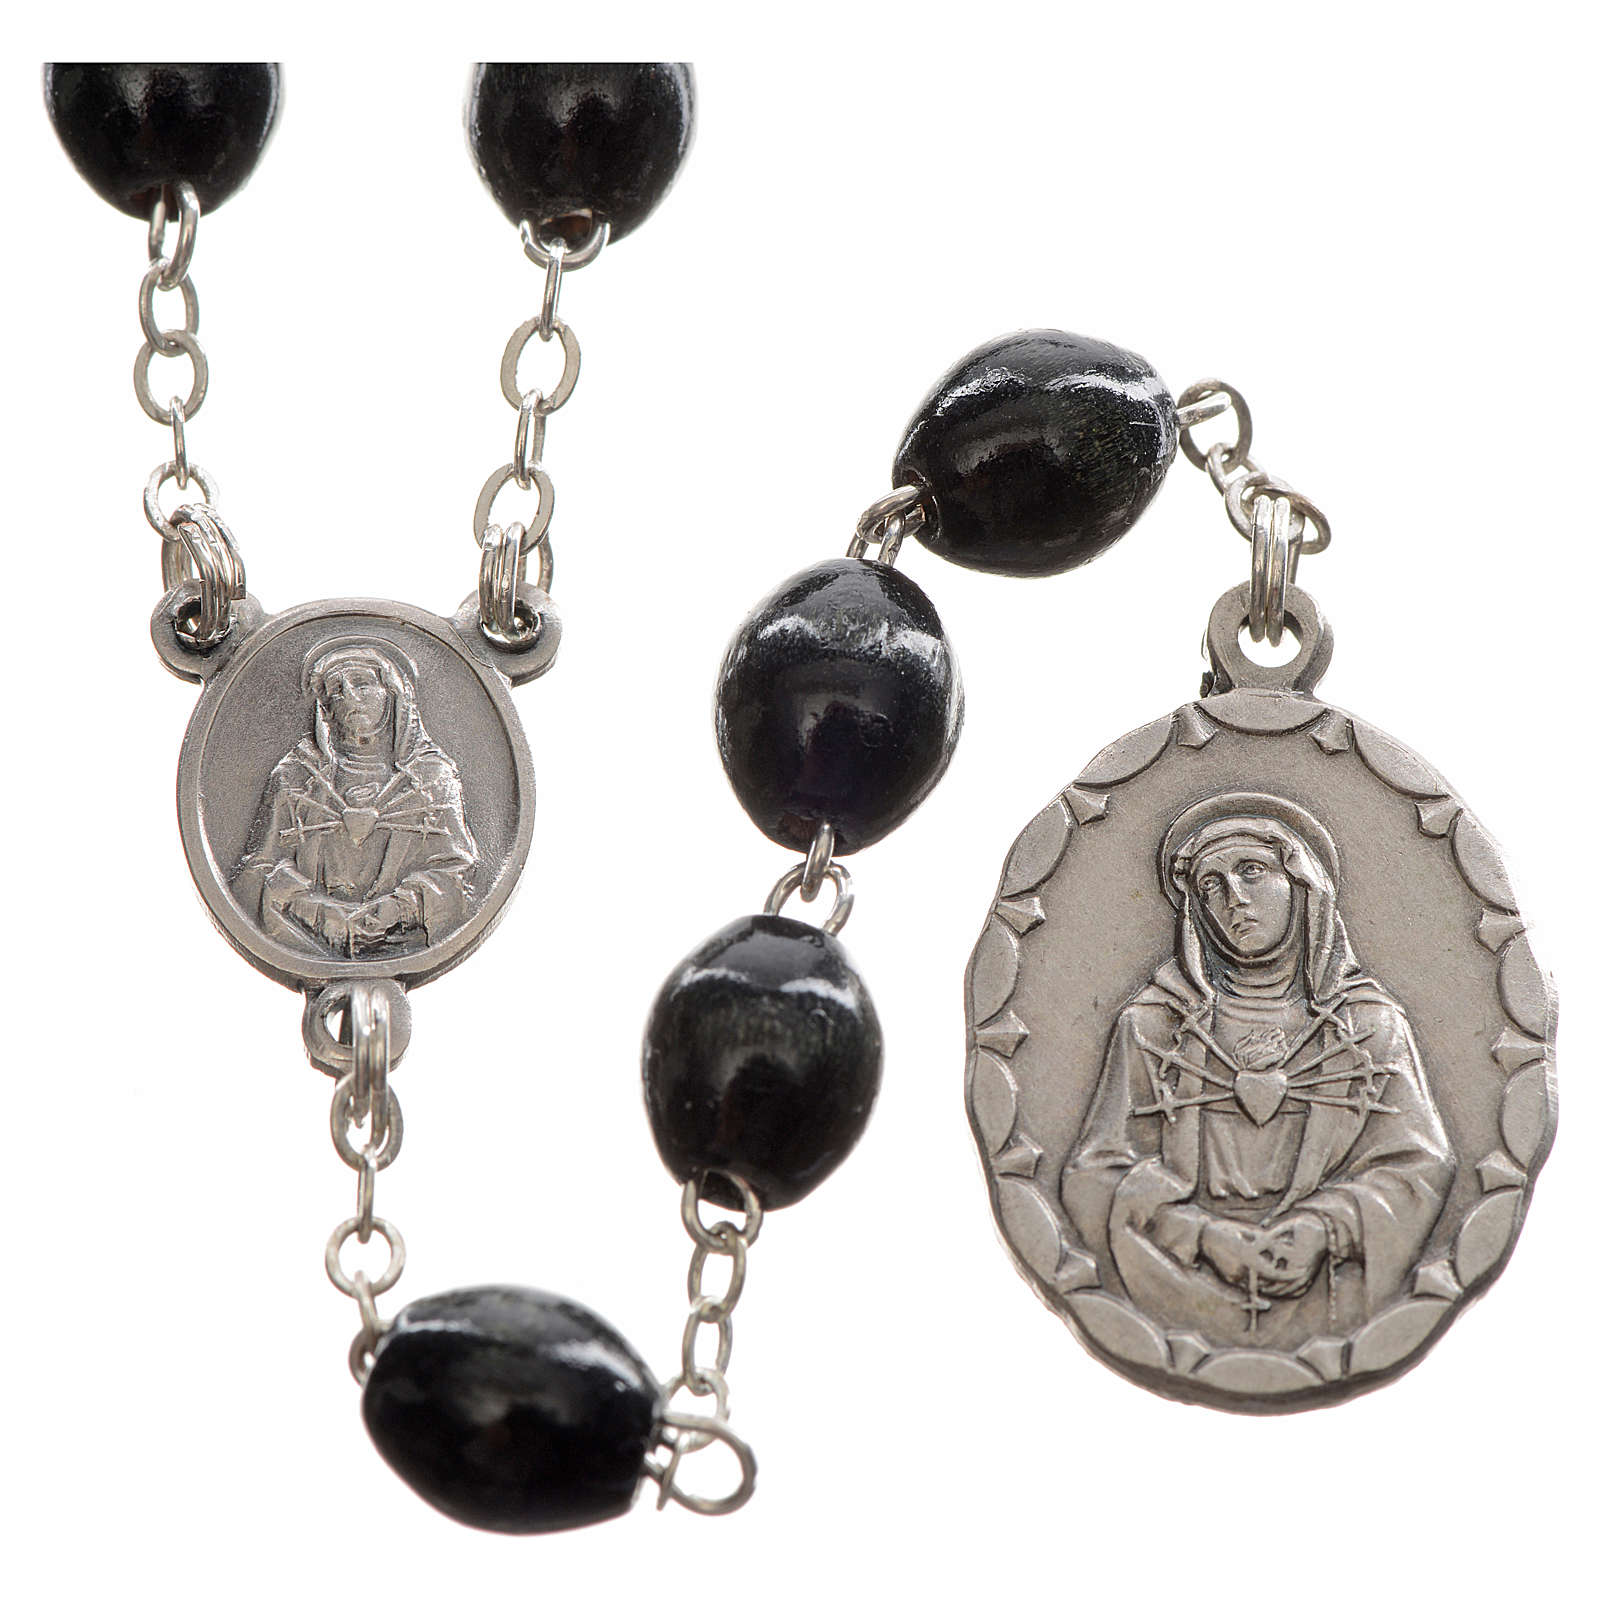 Rosary dedicated to Our Lady of Sorrows, black 4